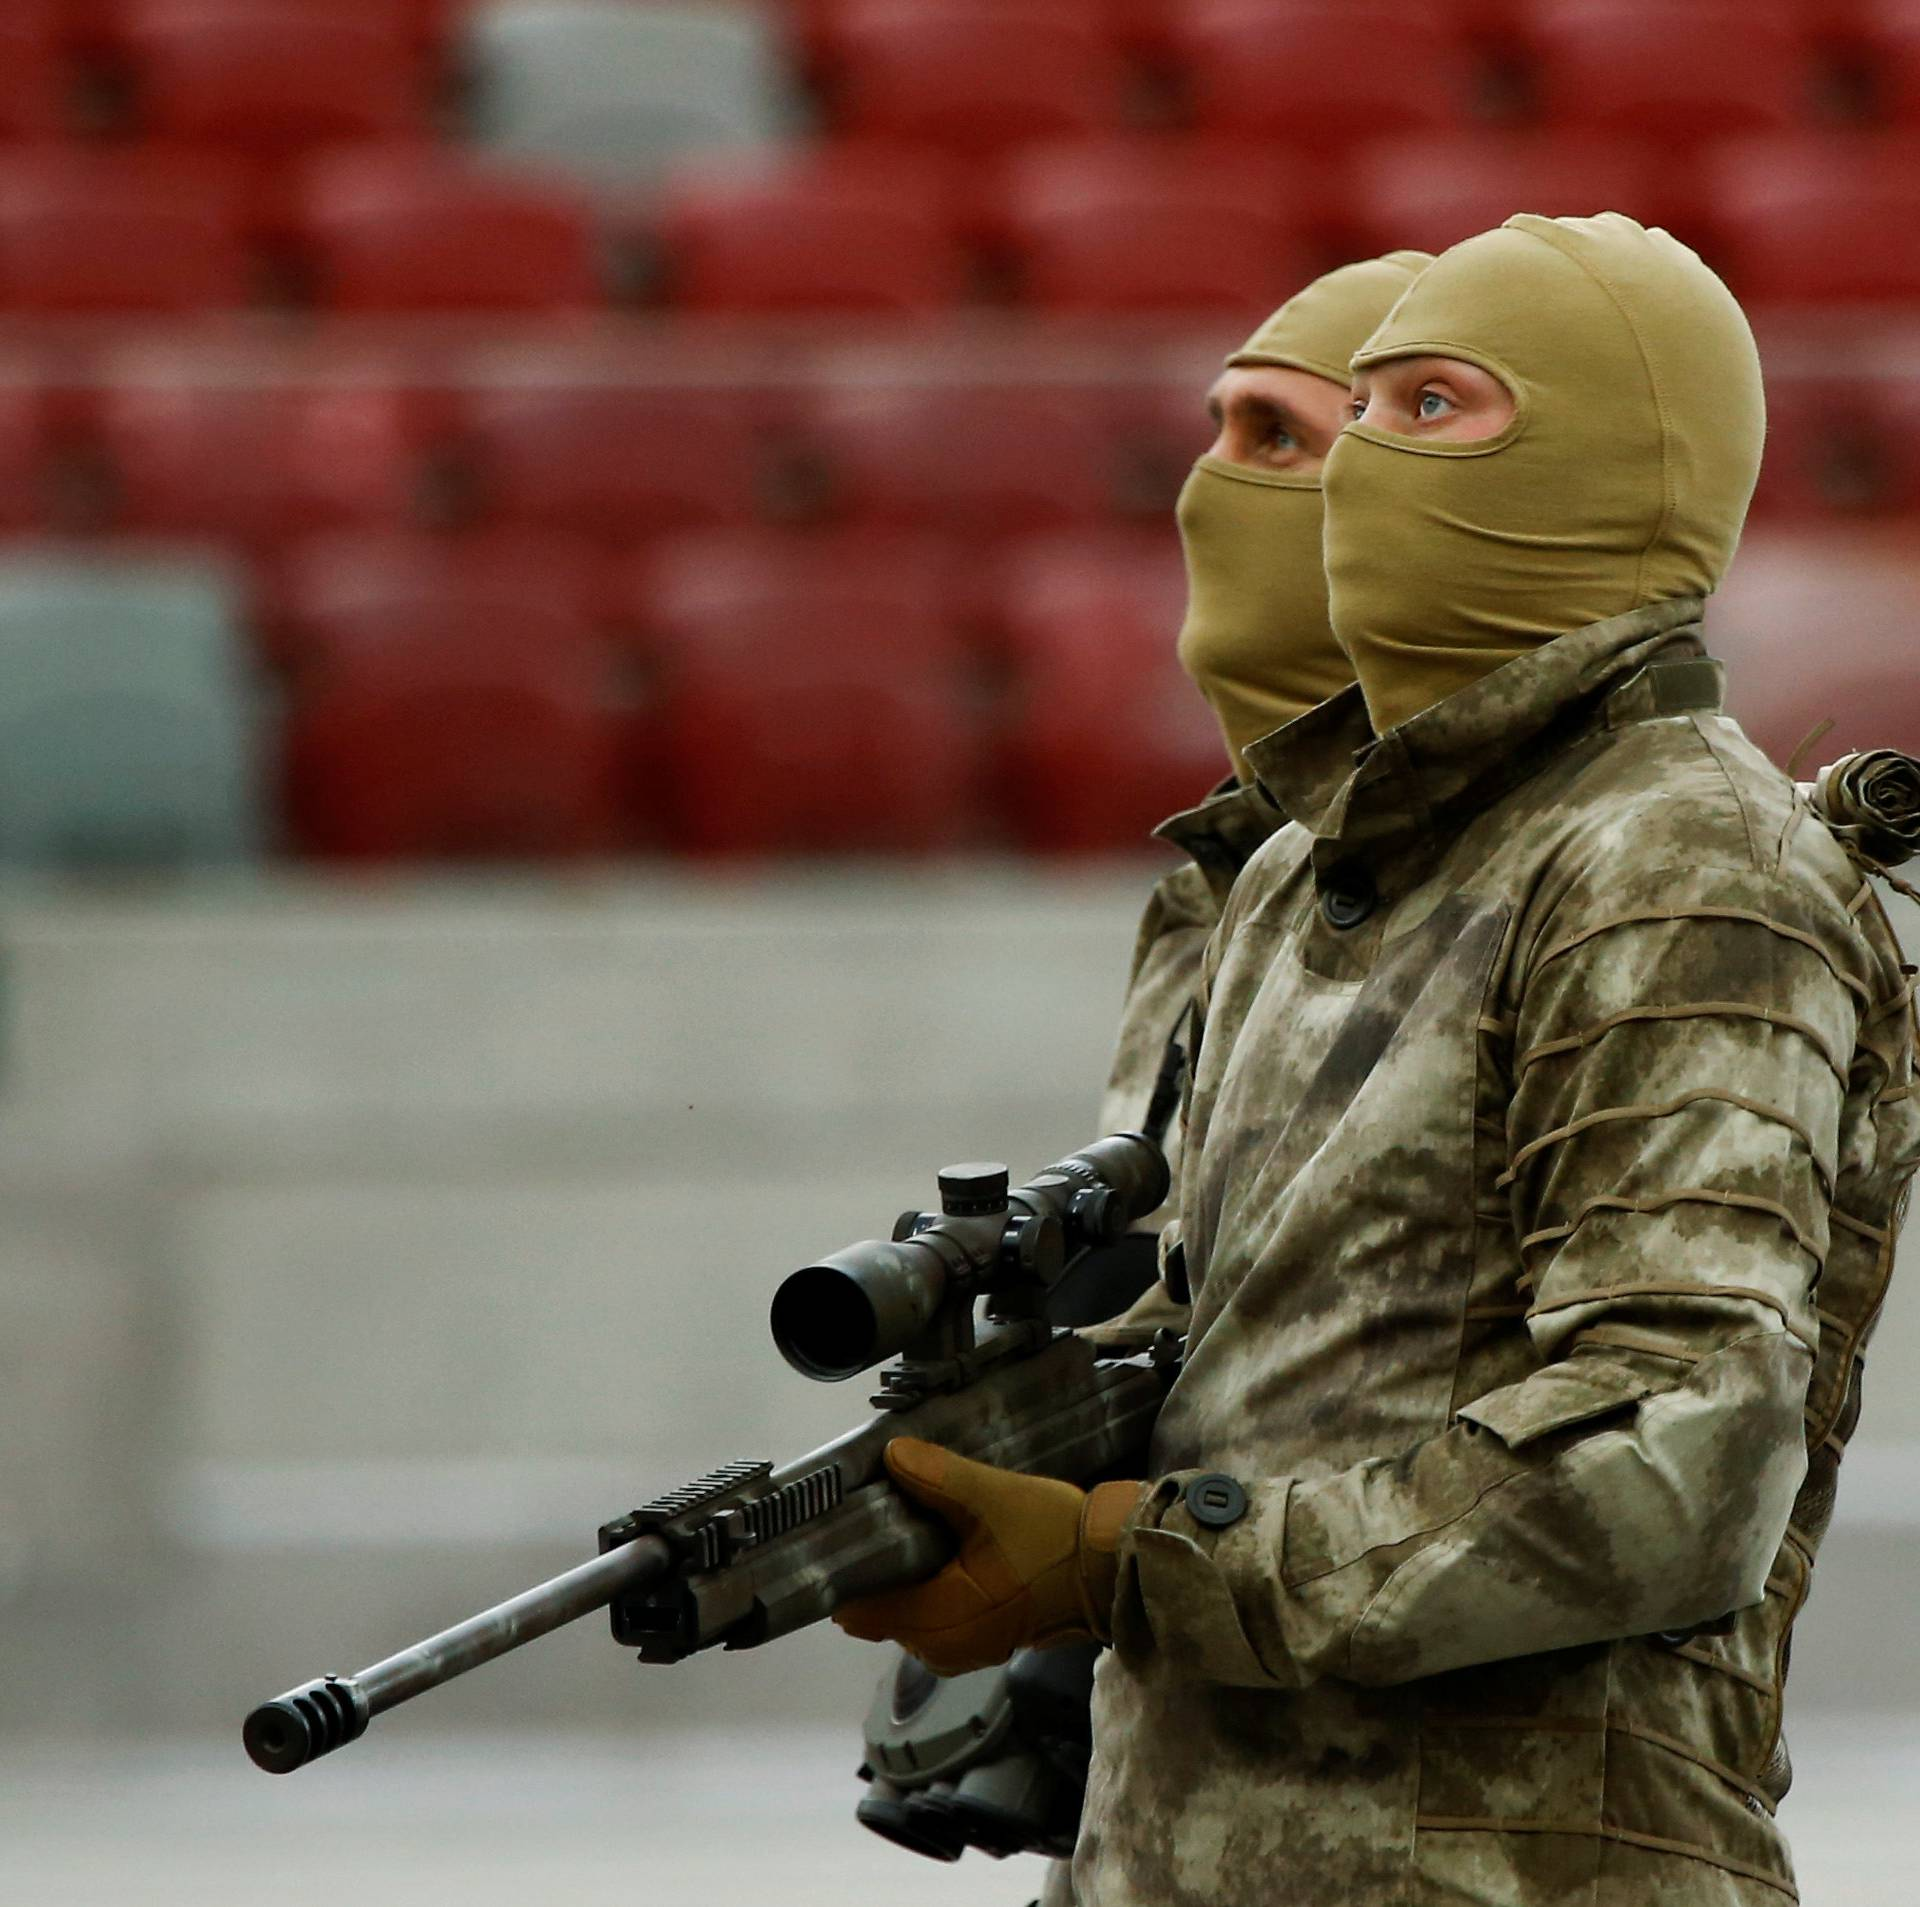 Soldiers look on after the demonstration of their skills during a military police exercise before the NATO summit in July in Warsaw, at the PGE National Stadium in Warsaw